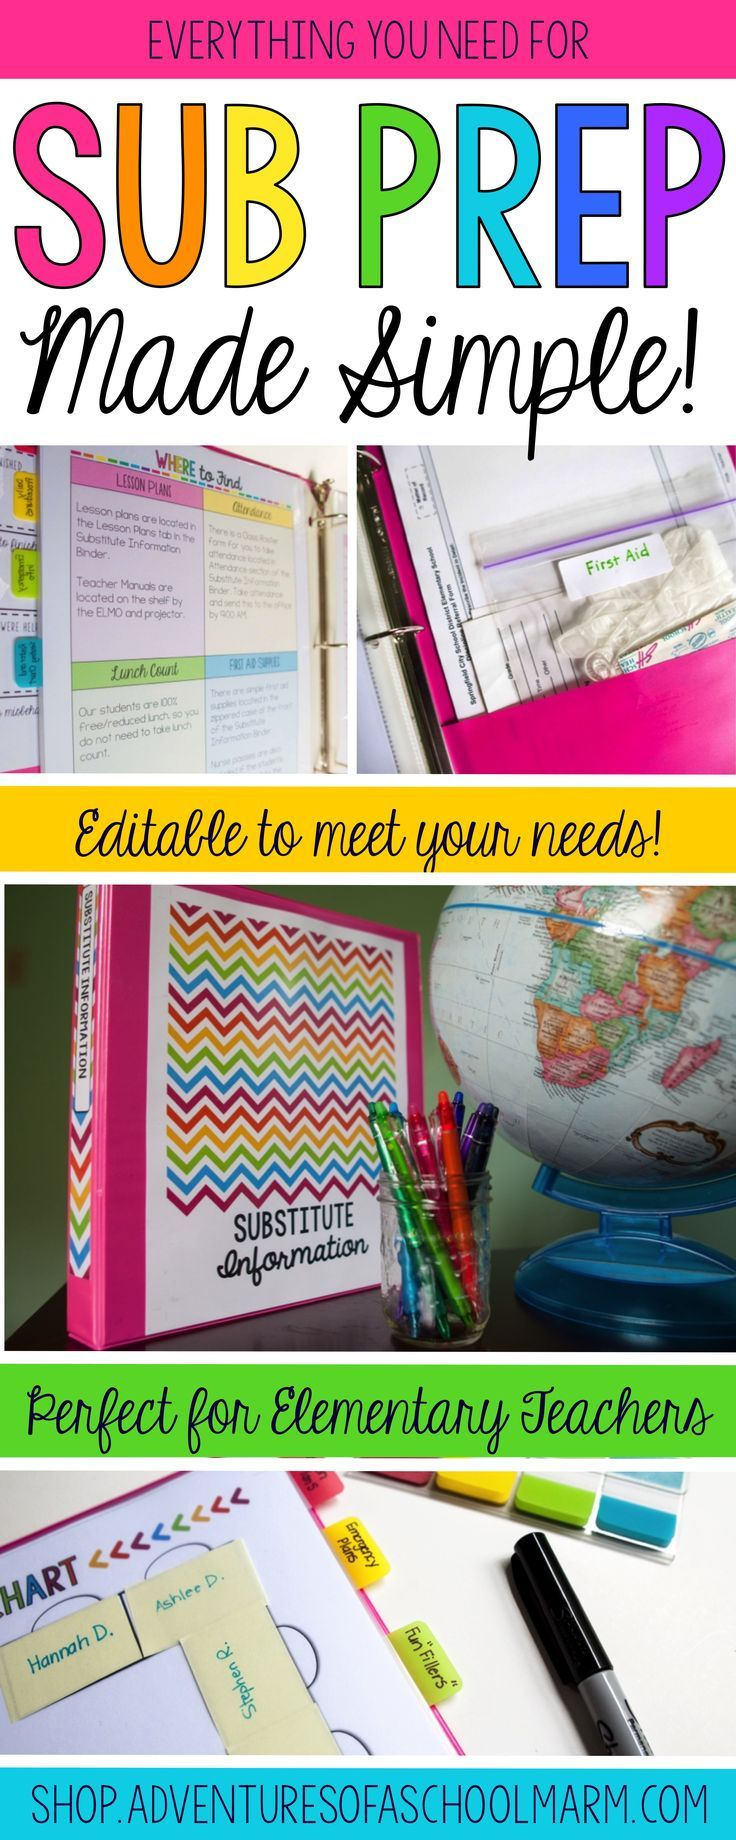 This EDITABLE sub binder keeps prep for a sub simple! Always be prepared to have a substitute teacher in your classroom with these templates and forms. Perfect for Kindergarten, 1st grade, 2nd grade, 3rd grade, 4th grade, 5th grade, & 6th grade teachers.